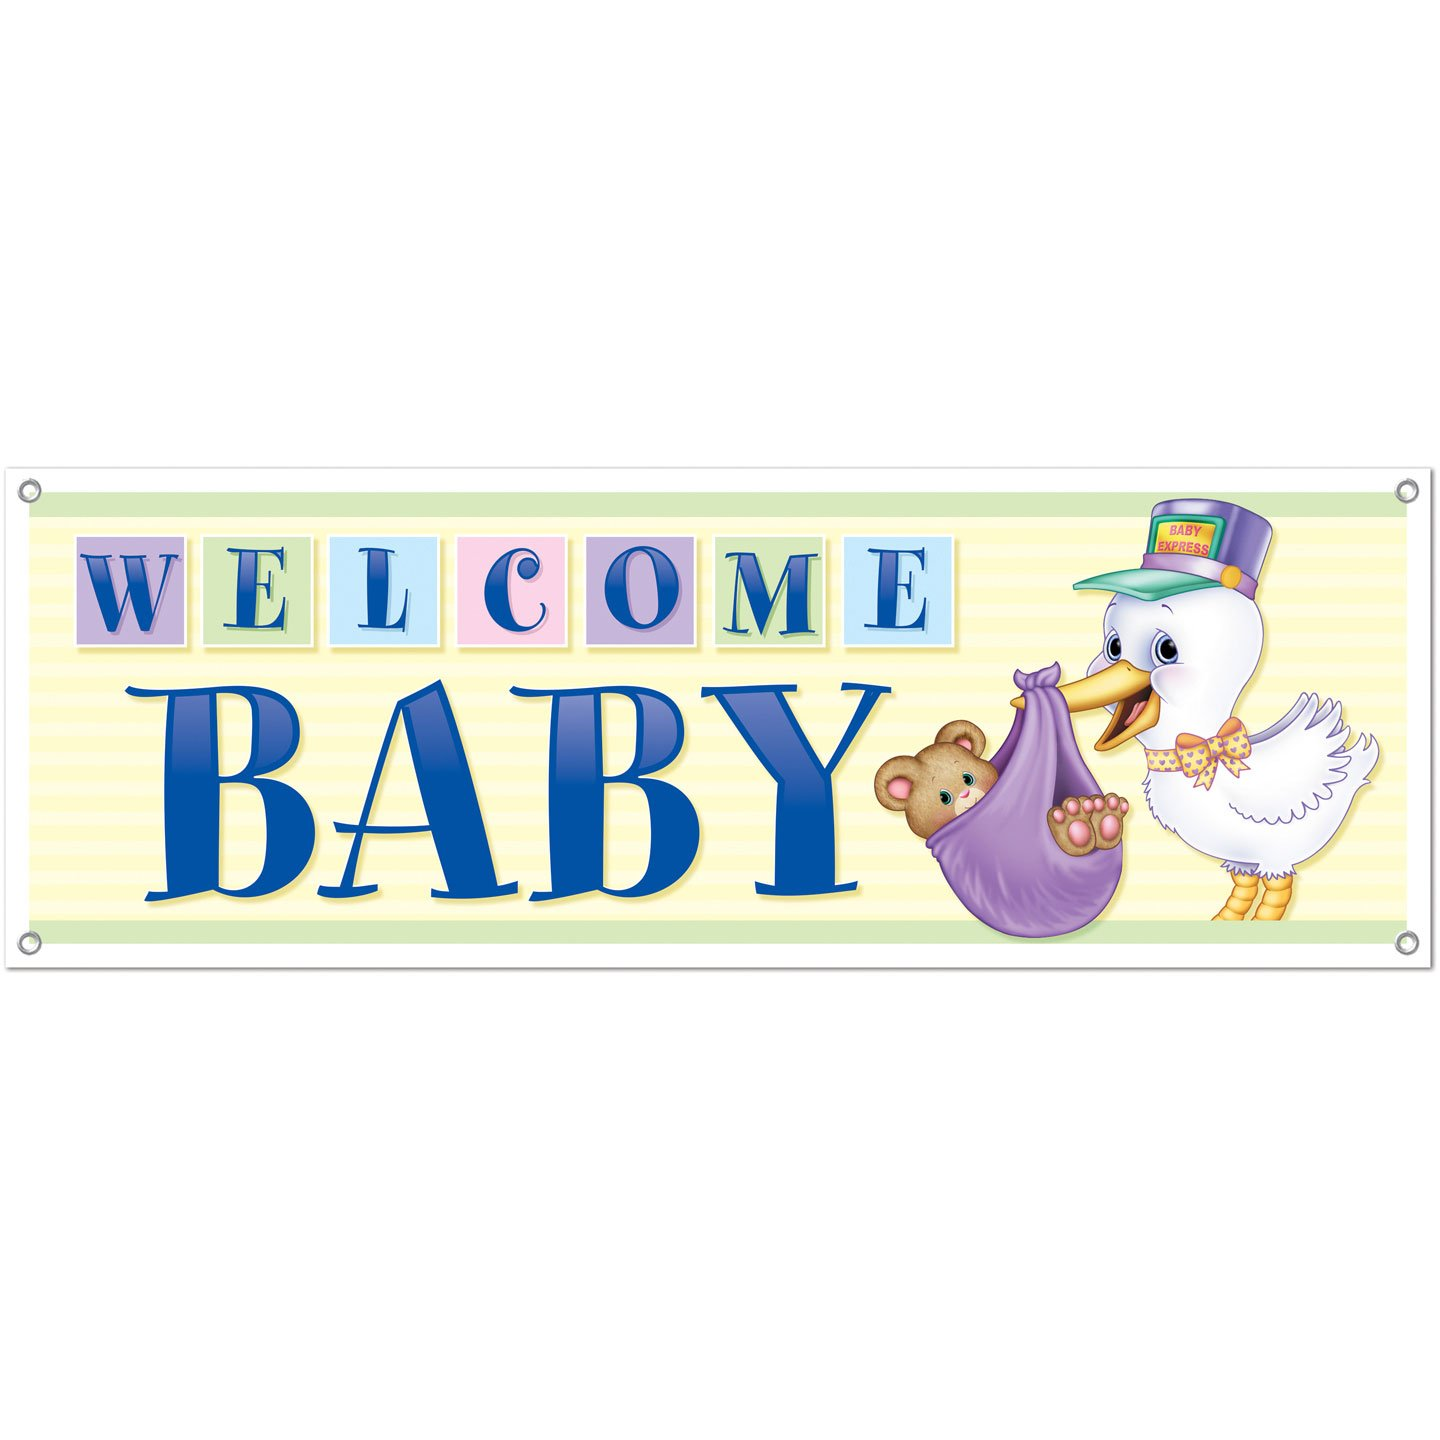 Boy baby shower banners baby shower mania Baby shower banners